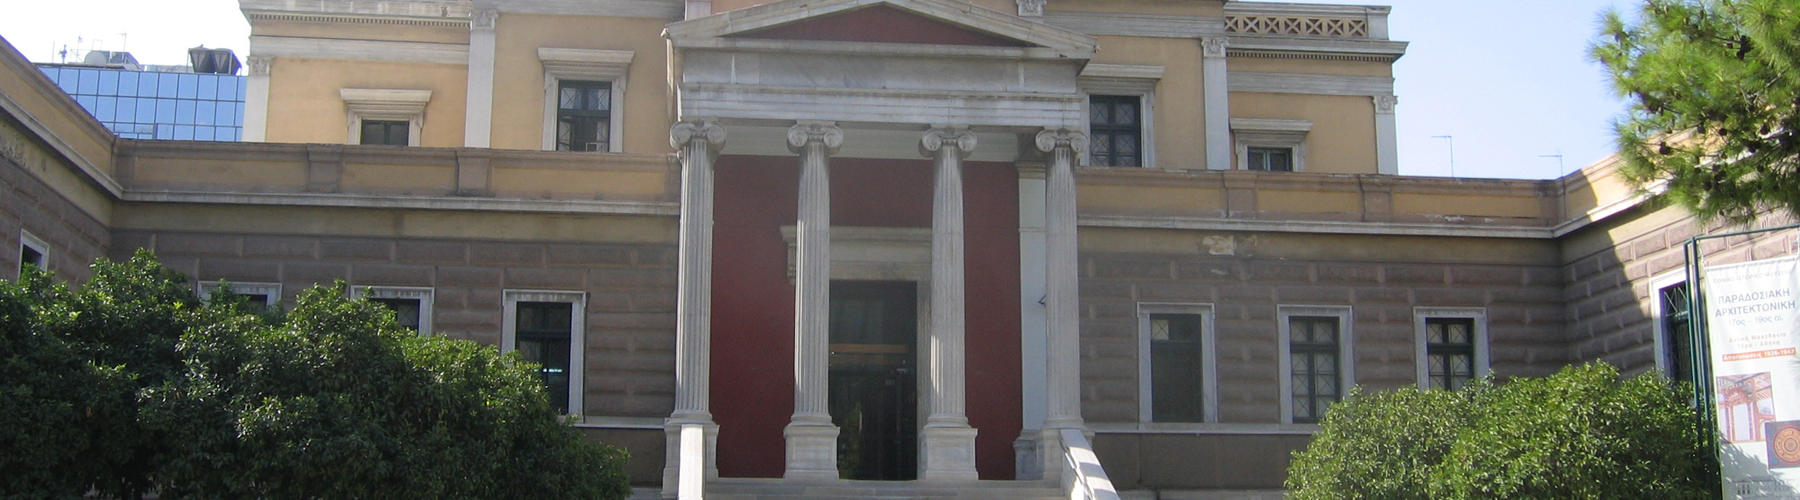 Athens – Hostels close to Old Parliament House. Maps for Athens, Photos and Reviews for each hostel in Athens.